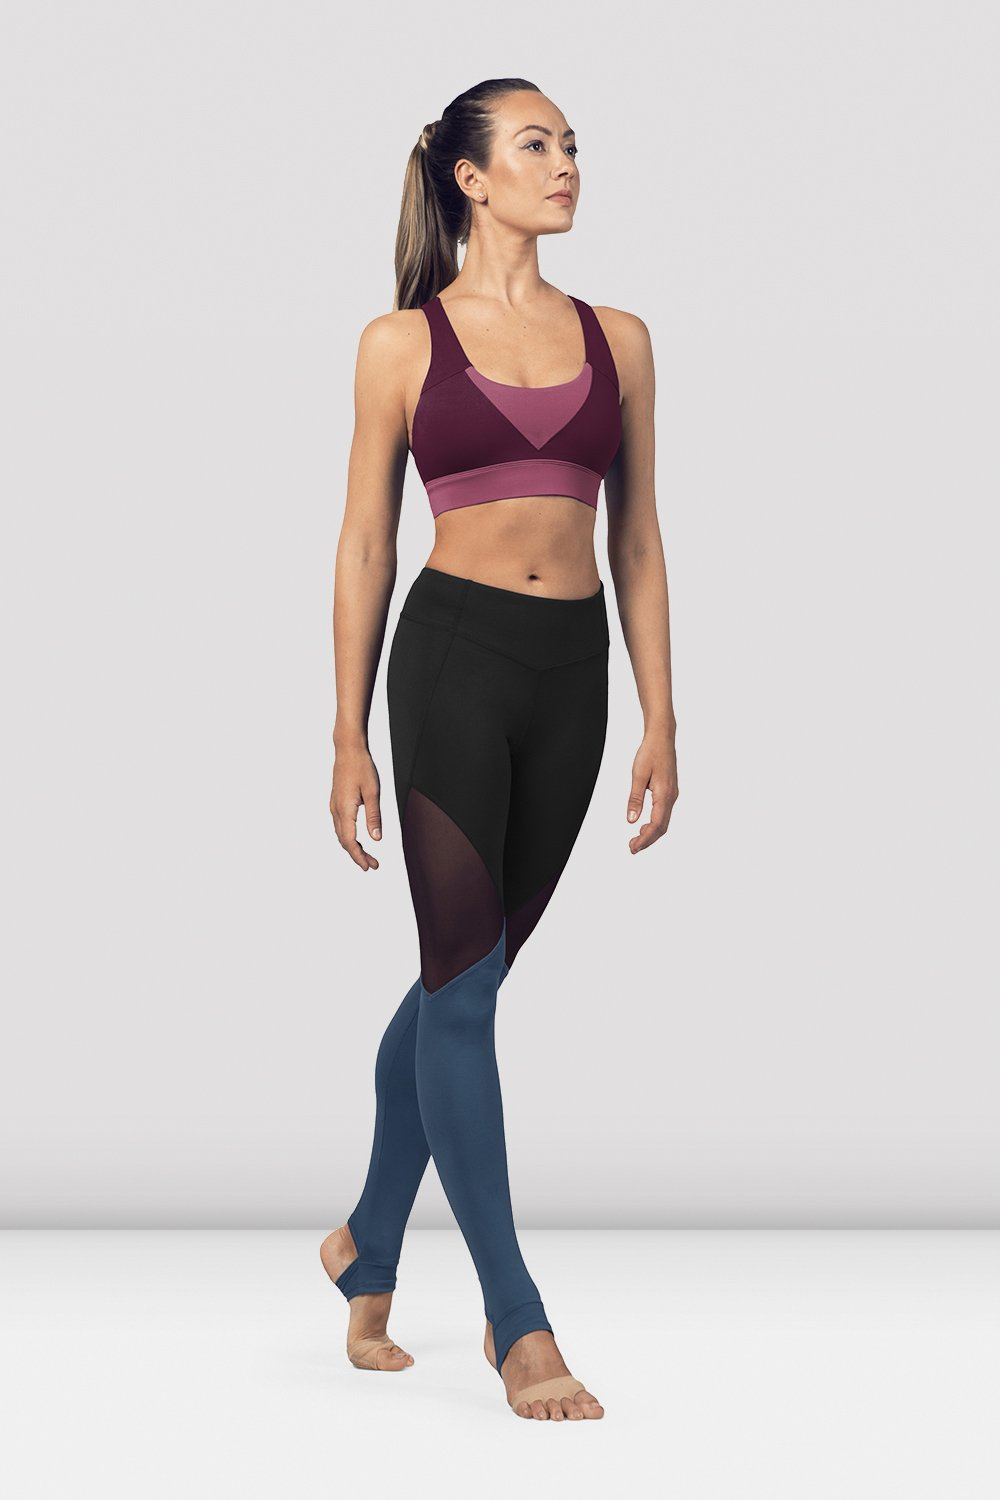 Dewberry Bloch Ladies Cross Back Tank Crop Top  on female model in parallel fourth position on releve facing corner